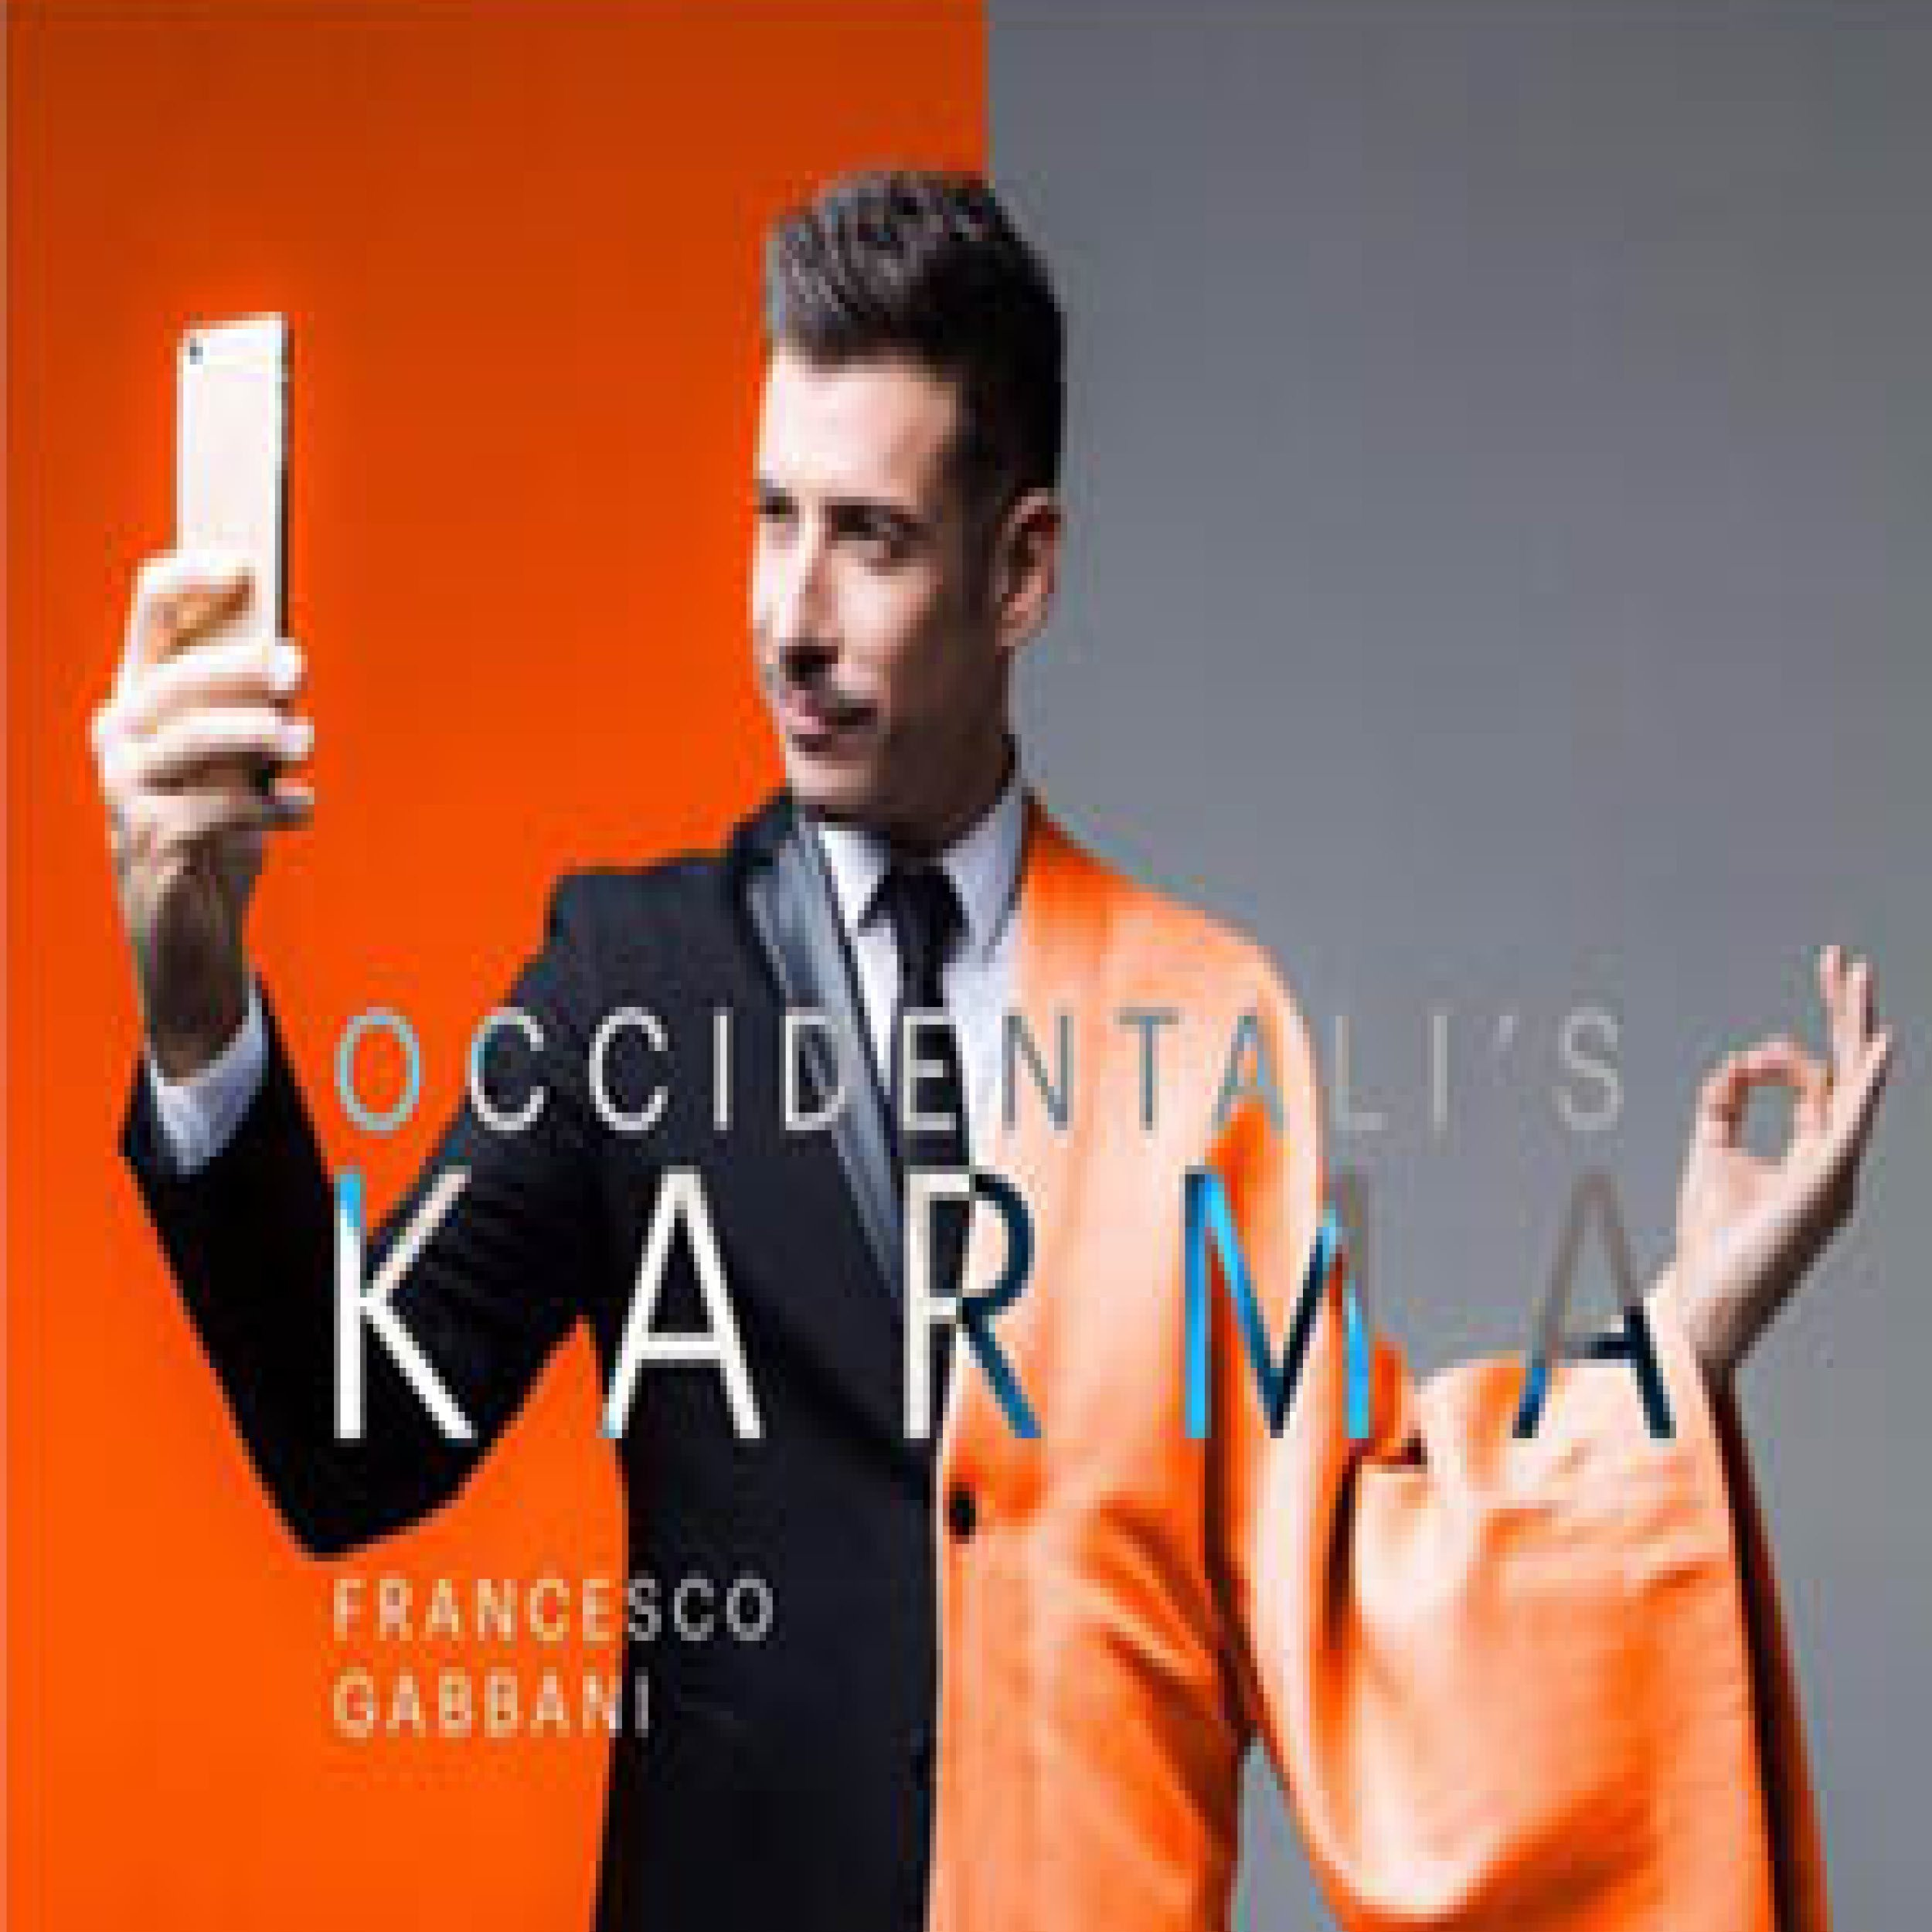 Italian Songs: Occidentali's Karma